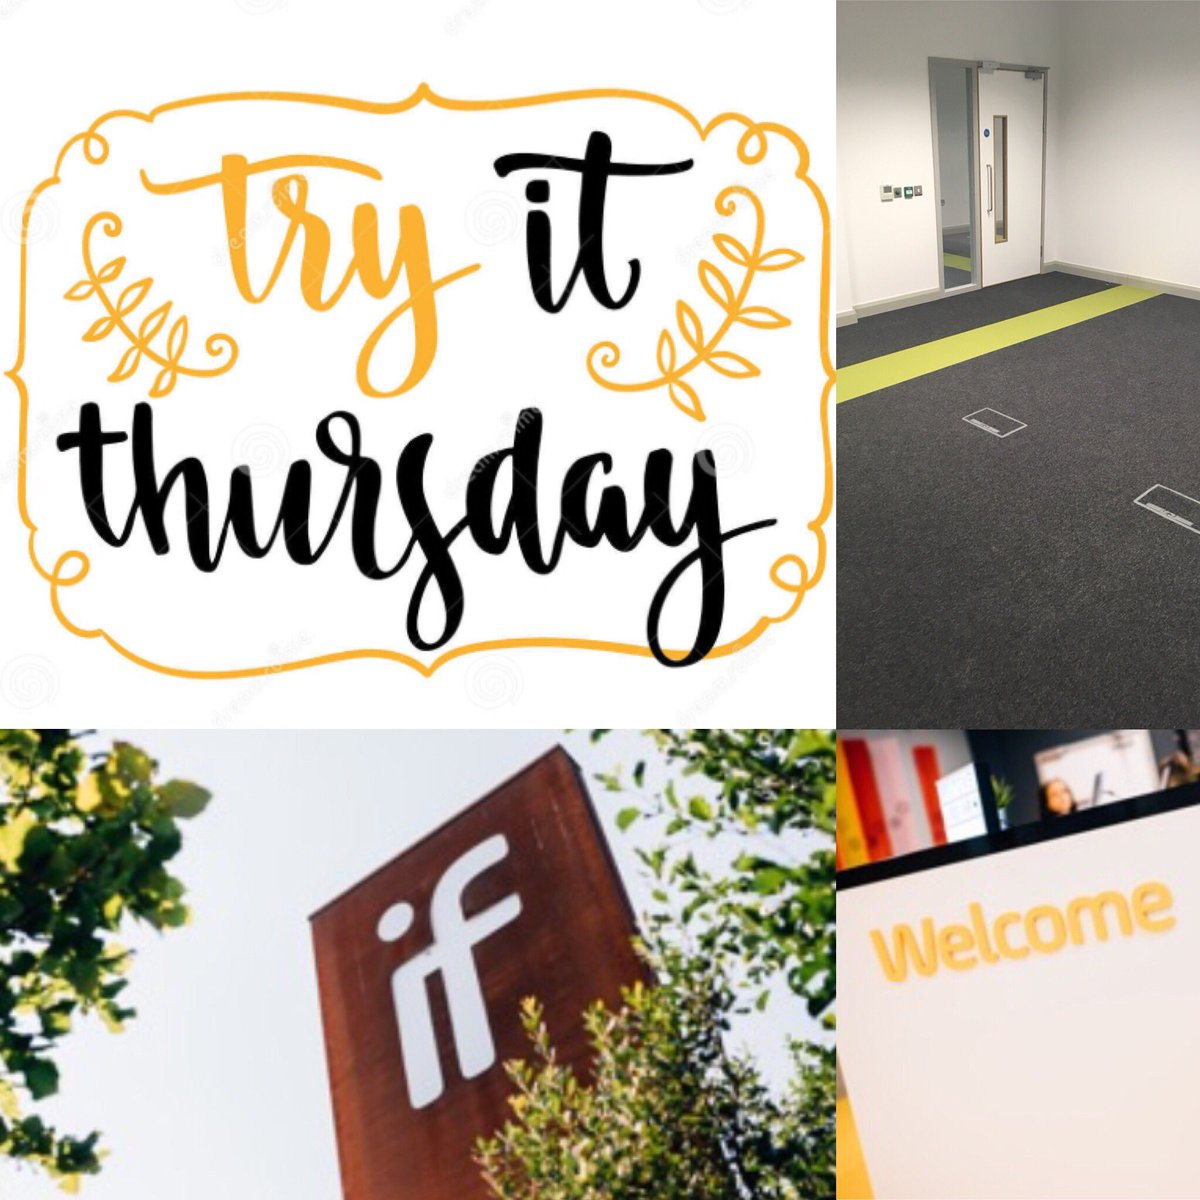 Looking for new office space in #belfast? Why not try something different and join the IF community! Give us a call on 02895902500 to arrange a tour and see what we can do for you! #newofficespace #officespace #business #newadventure #tryitthursday<br>http://pic.twitter.com/kTMYvYpIkX